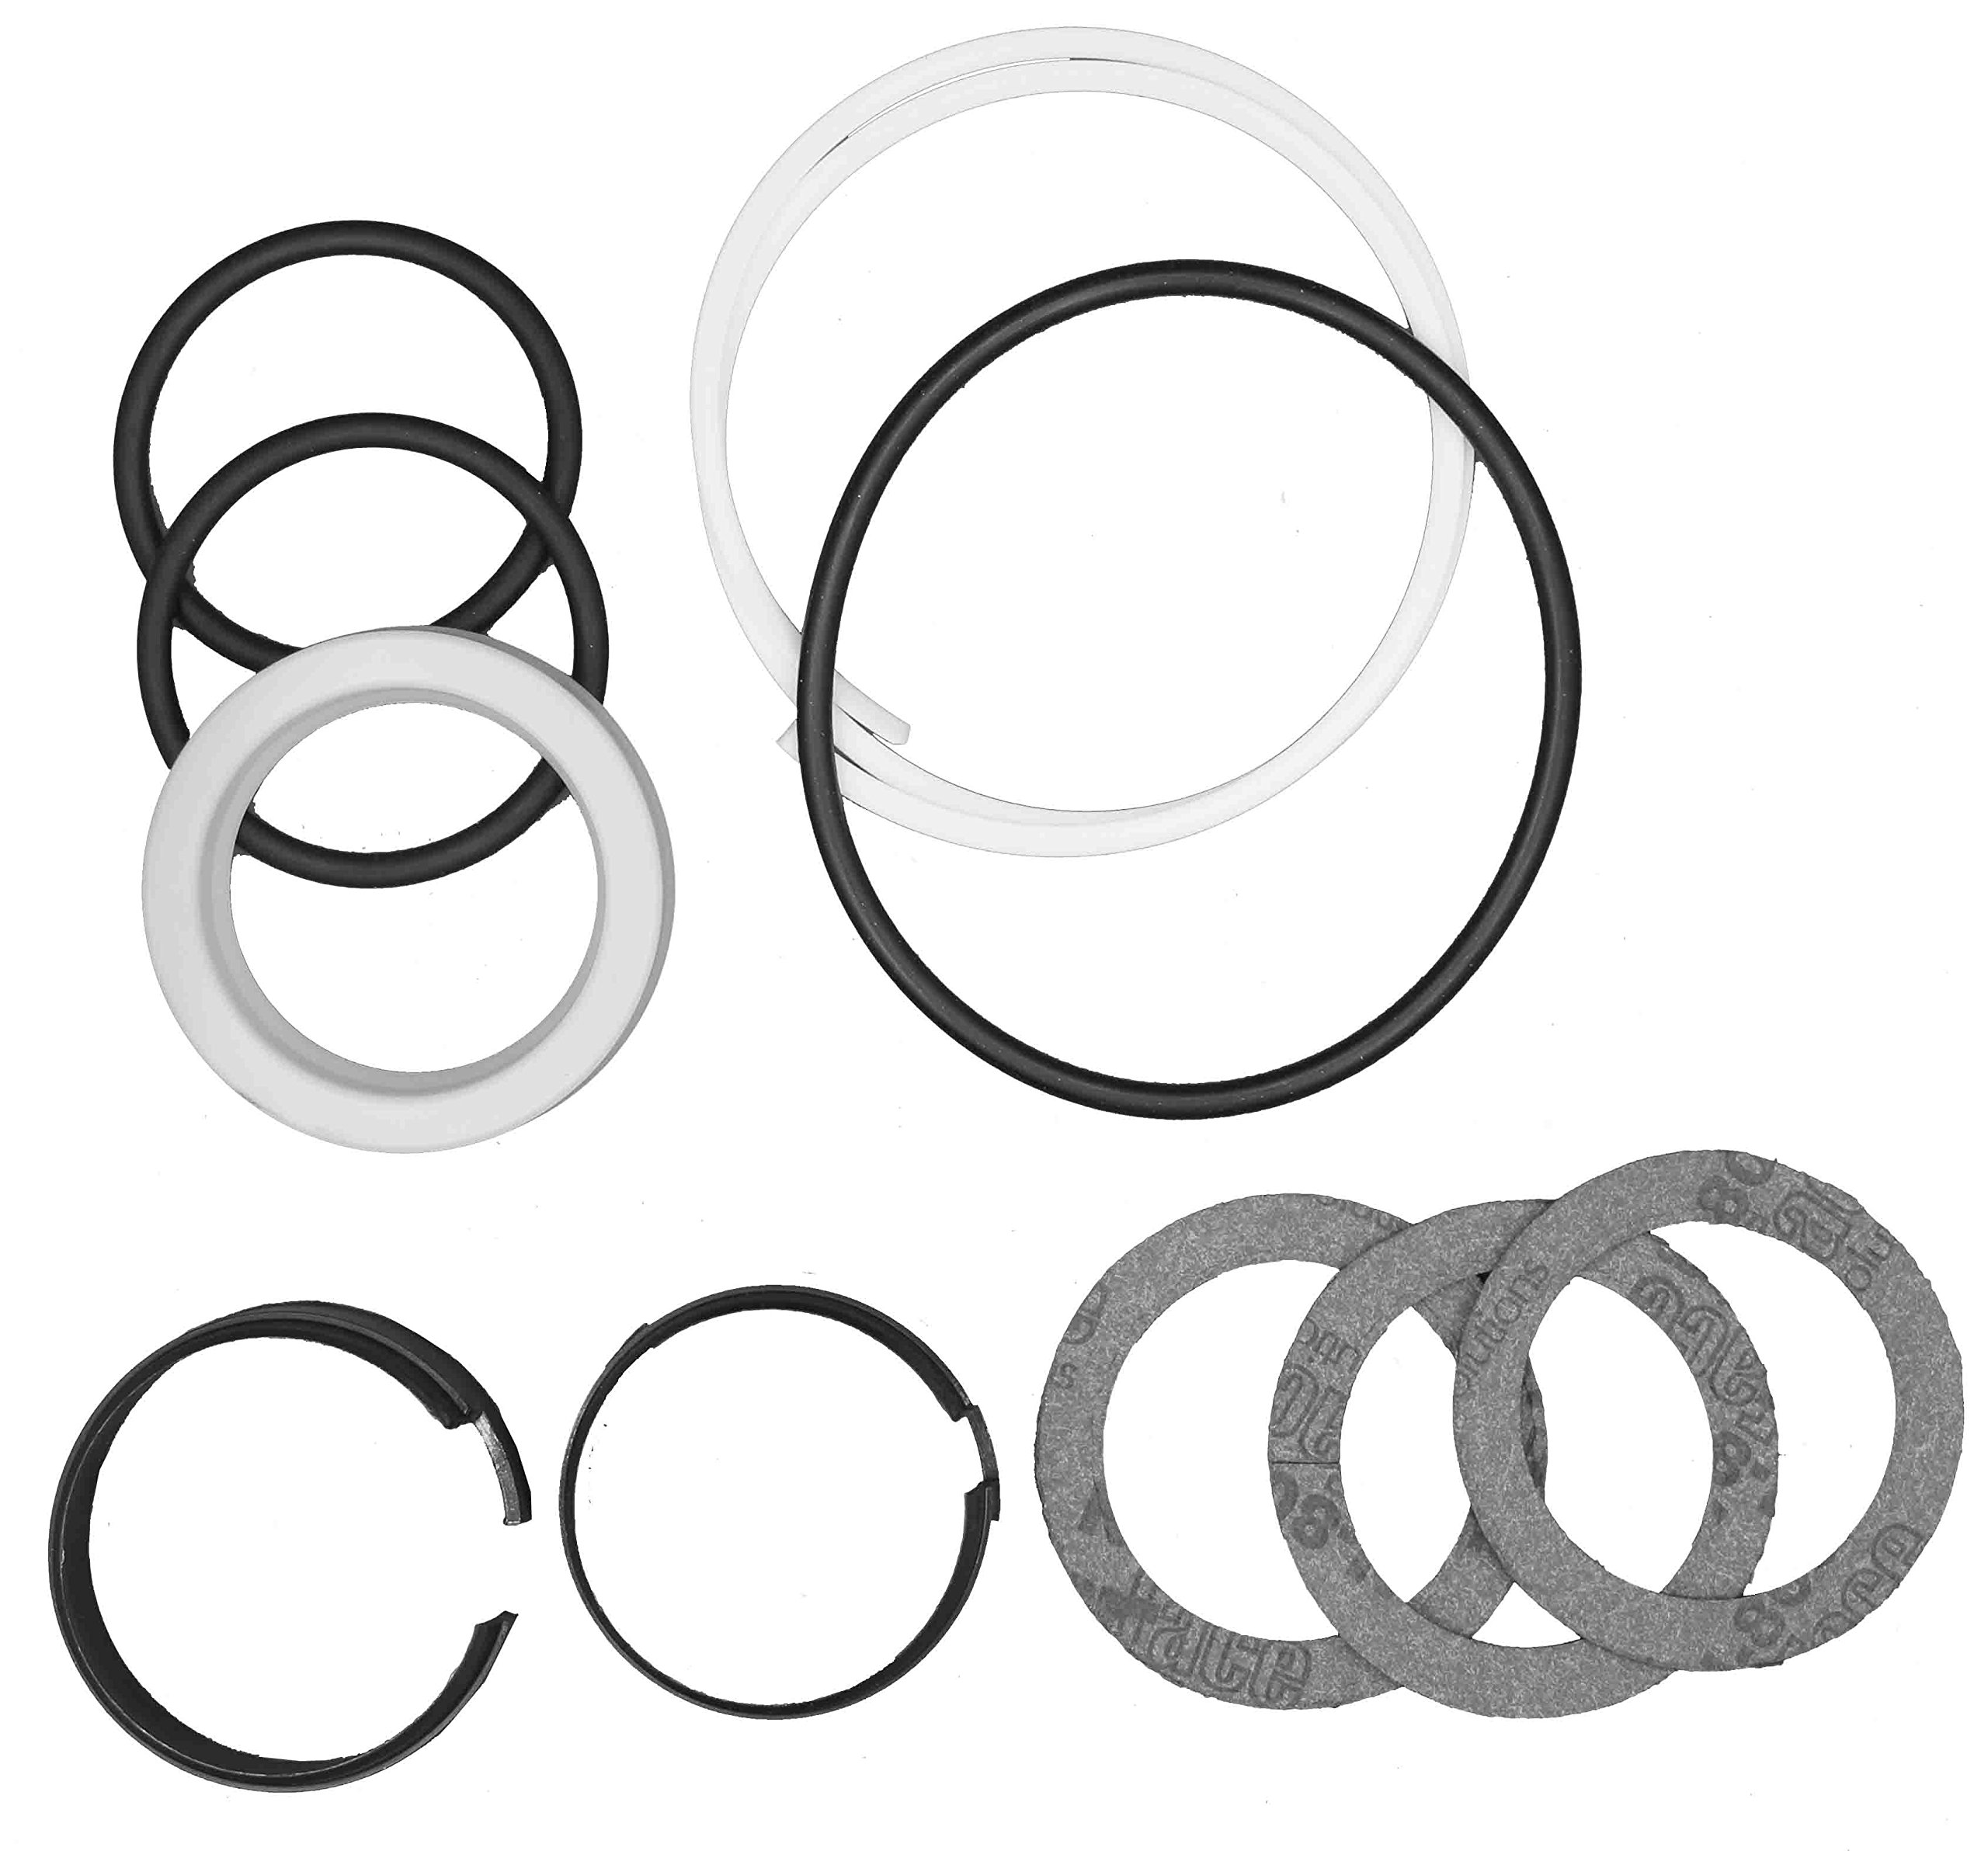 CASE D42870 HYDRAULIC CYLINDER SEAL KIT